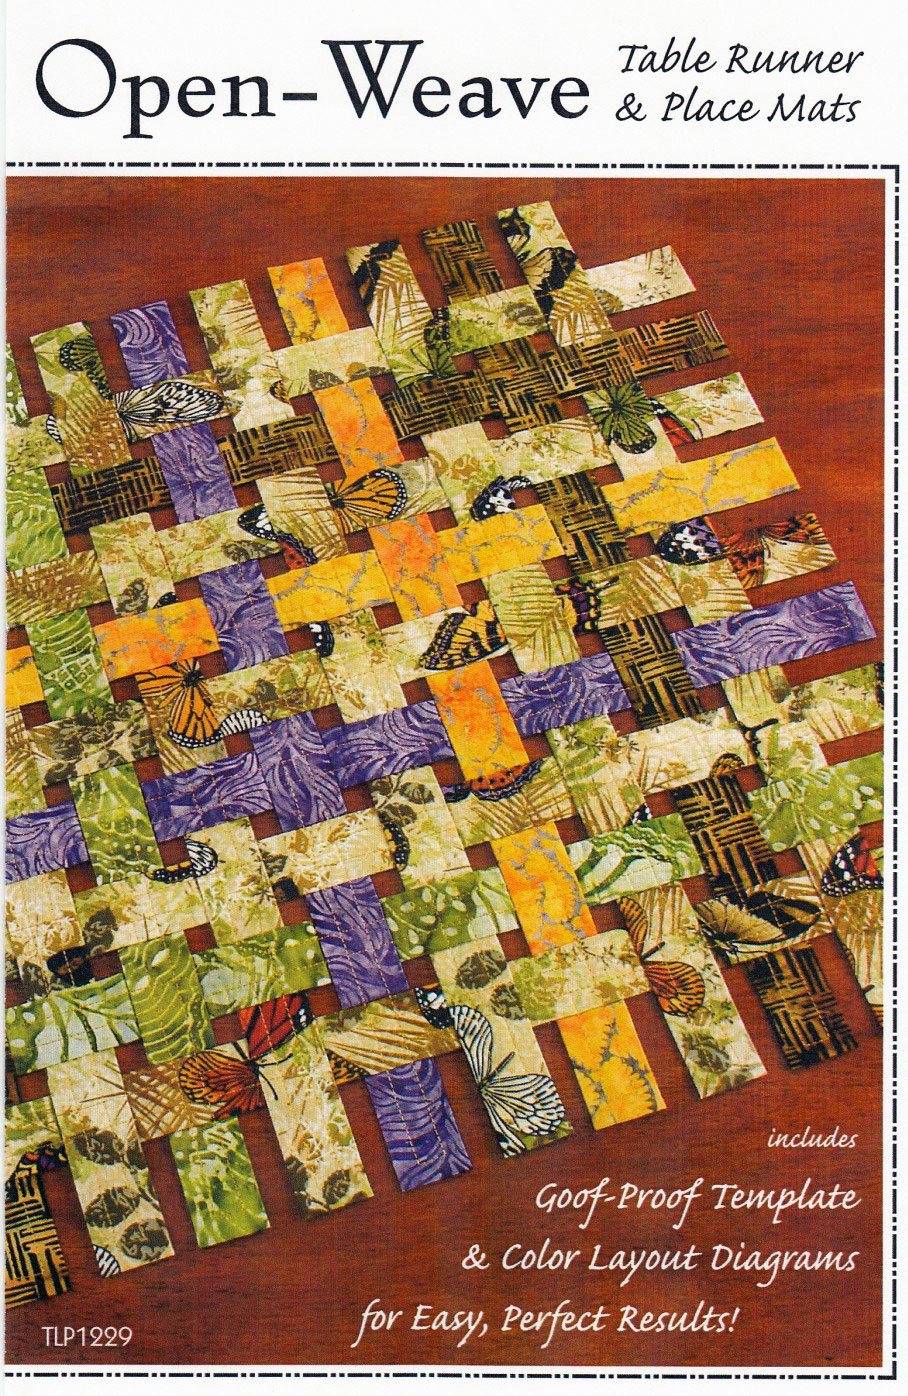 Open-Weave-sewing-pattern-Tiger-Lily-Press-front